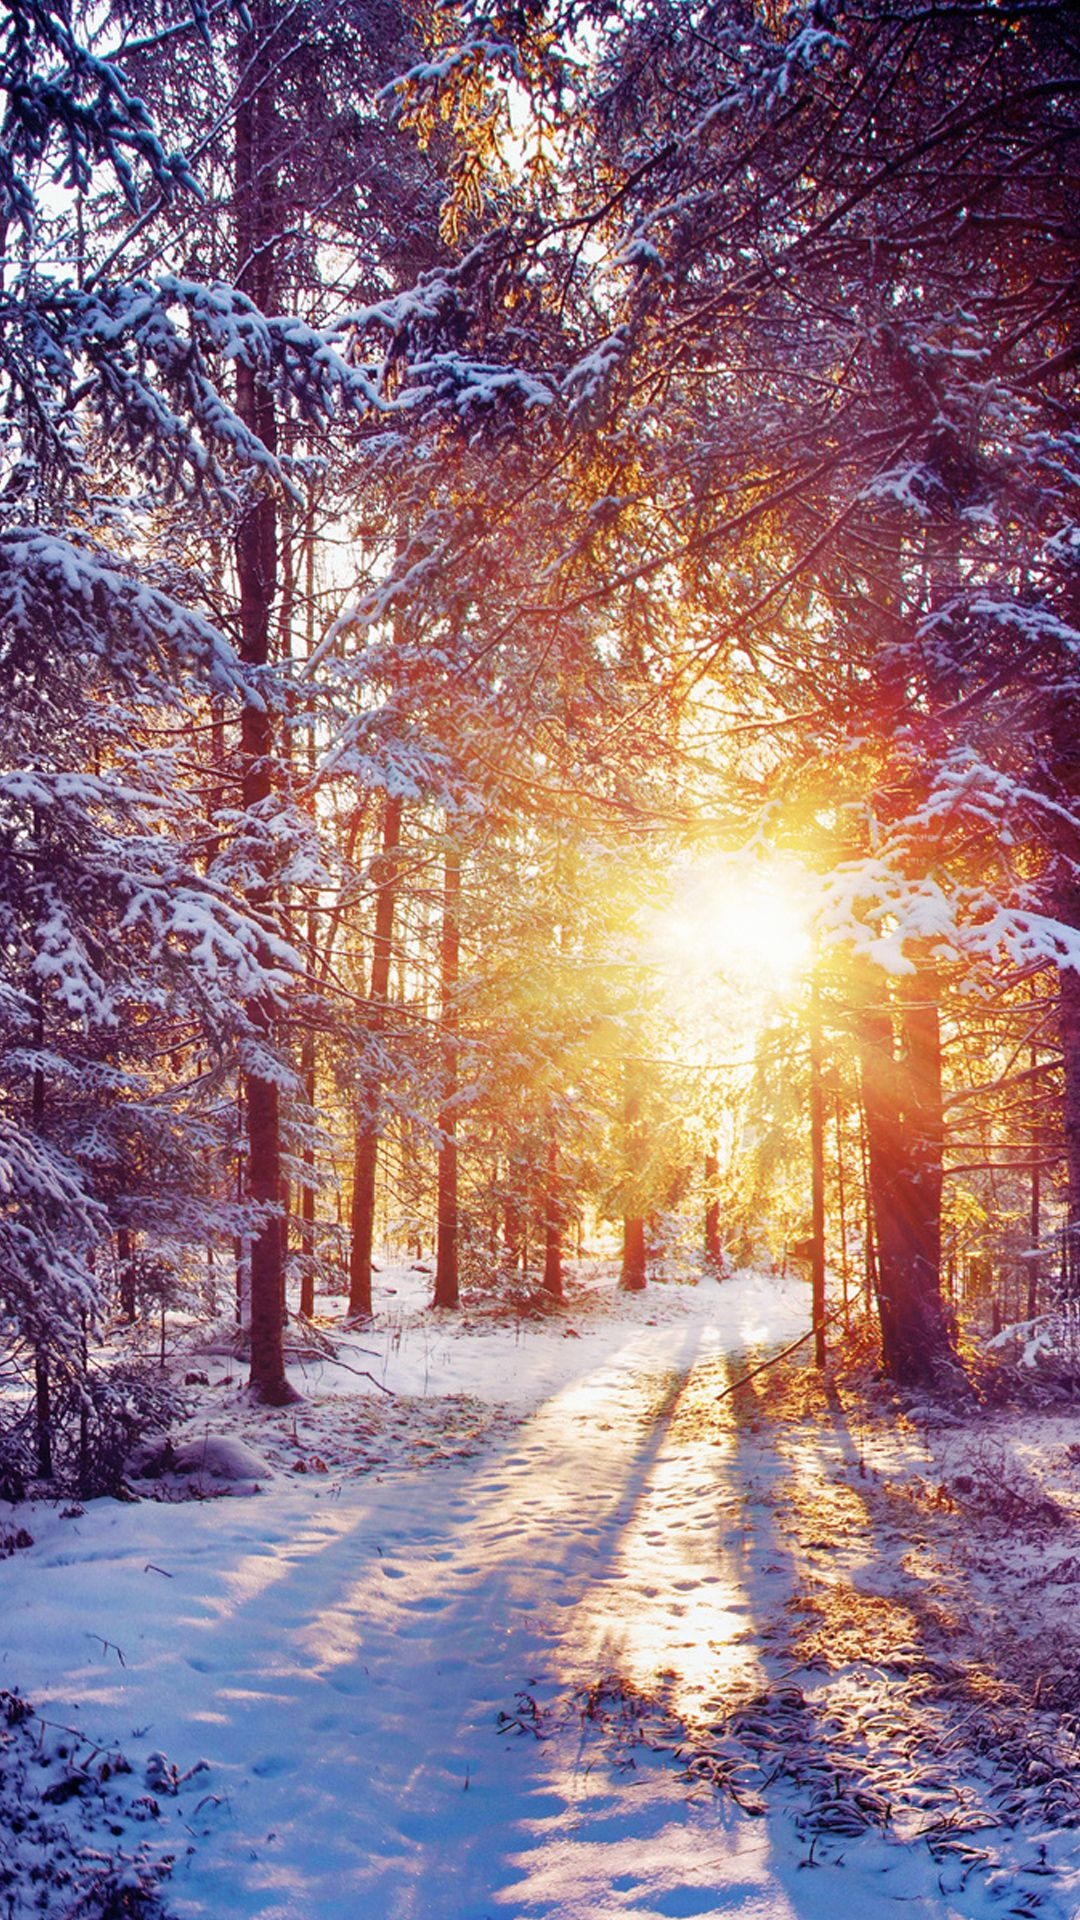 Winter Sunset Shining Through Forest Trees IPhone 6 Plus HD Wallpaper